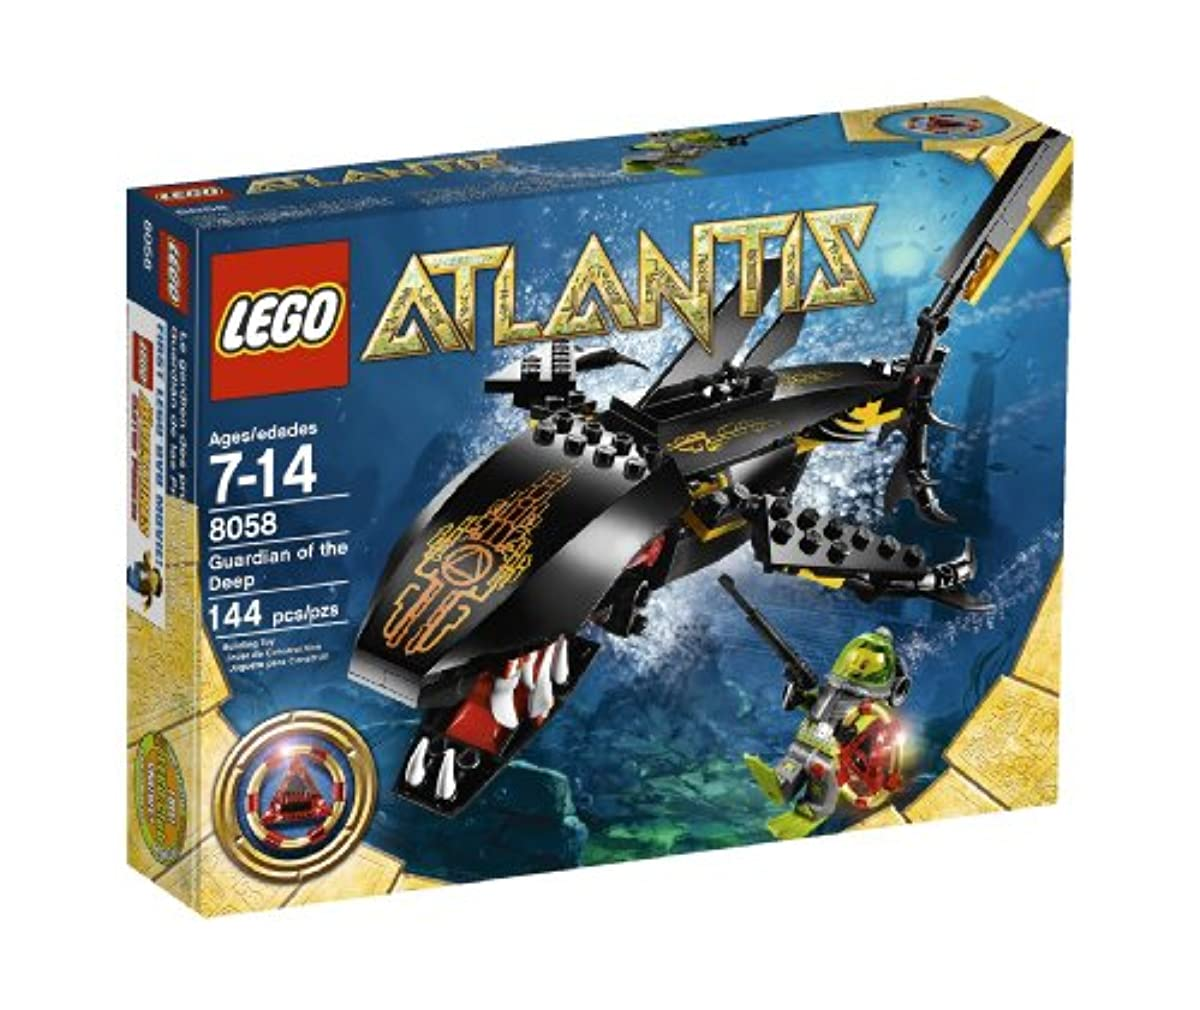 [레고 아틀란티스] LEGO Atlantis Guardian of the Deep (8058)